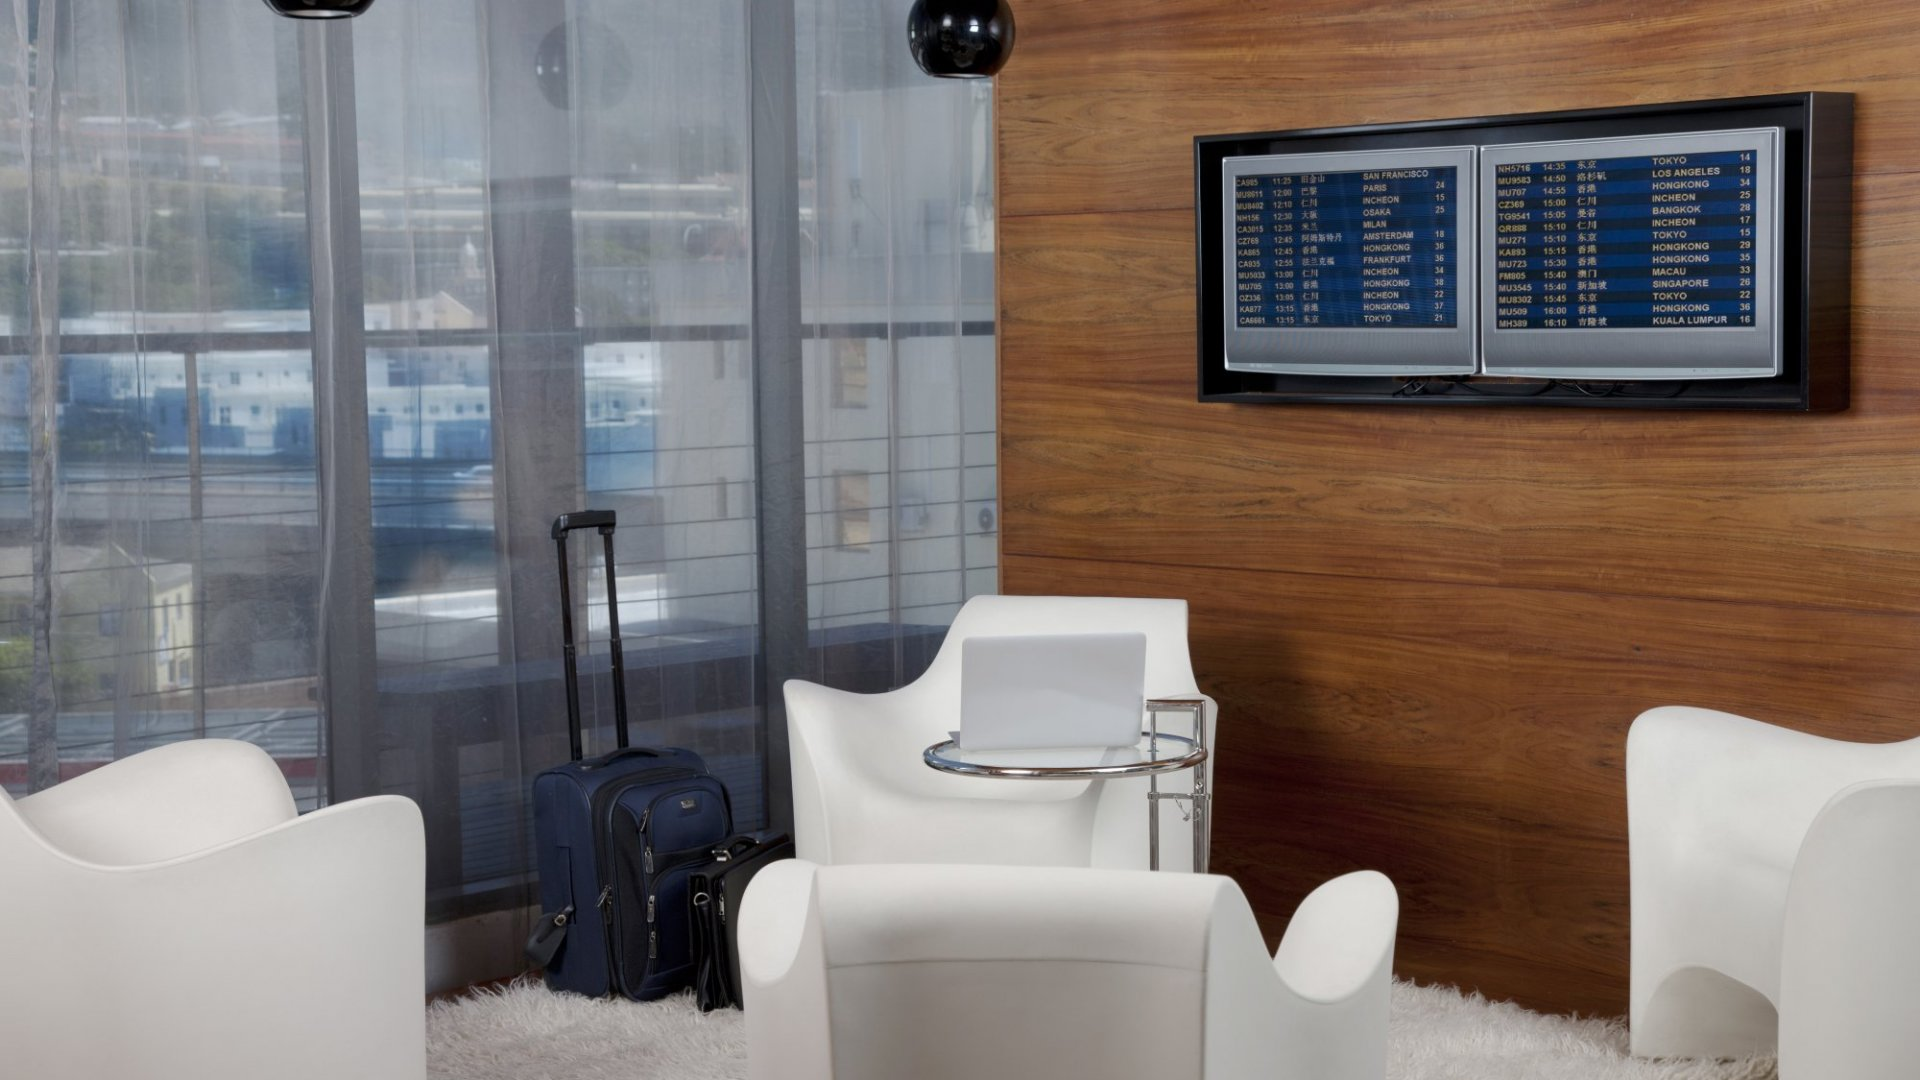 3 Airport Productivity Hacks for Business Travelers